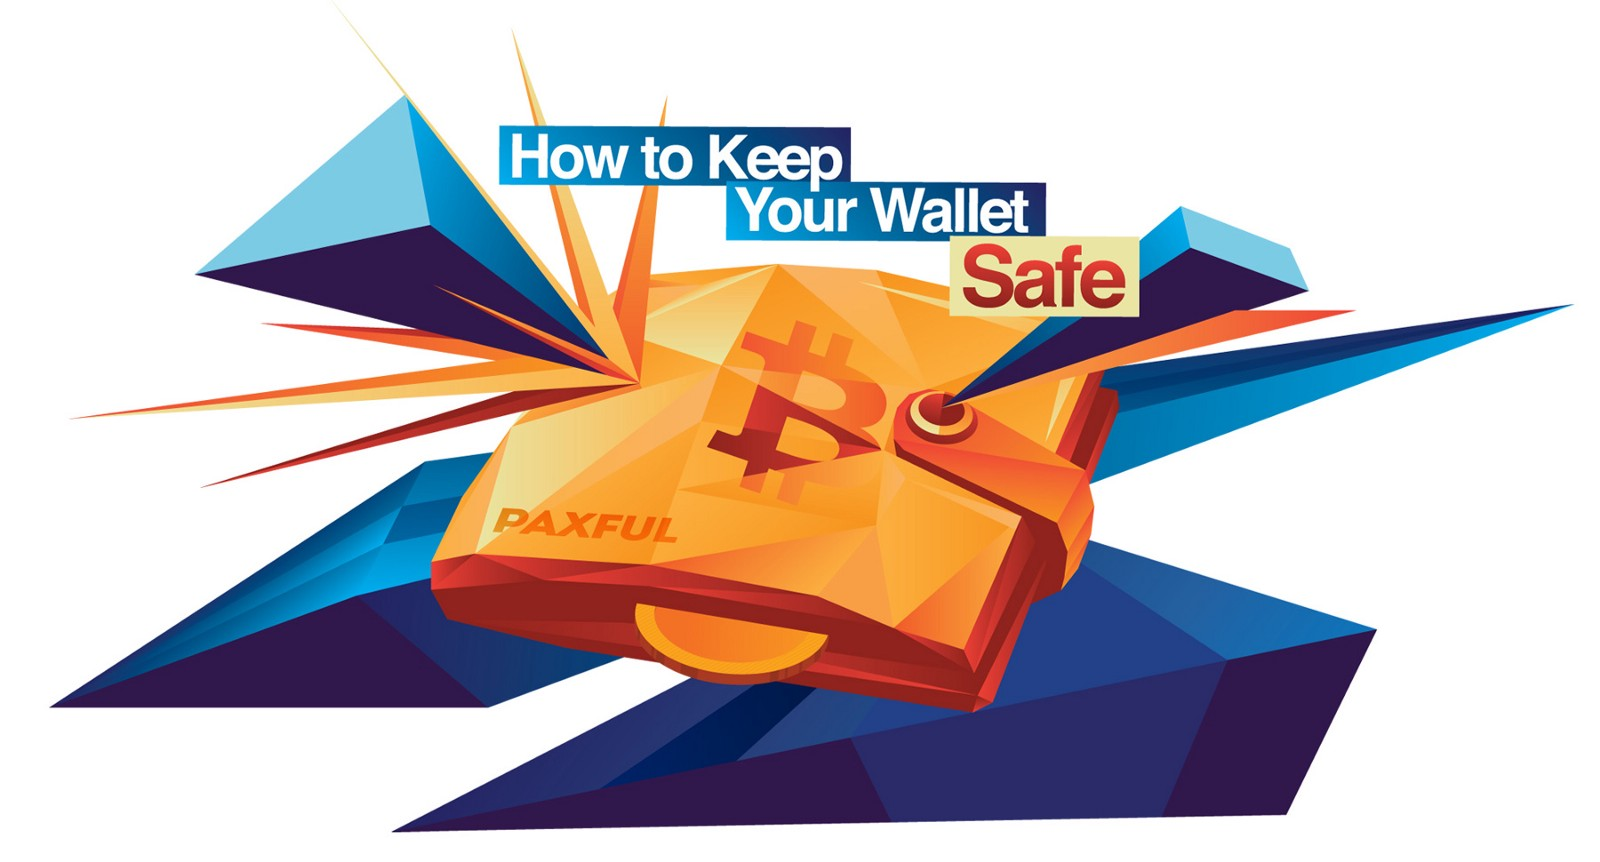 How to keep your bitcoin wallet safe paxful medium how to keep your bitcoin wallet safe ccuart Image collections